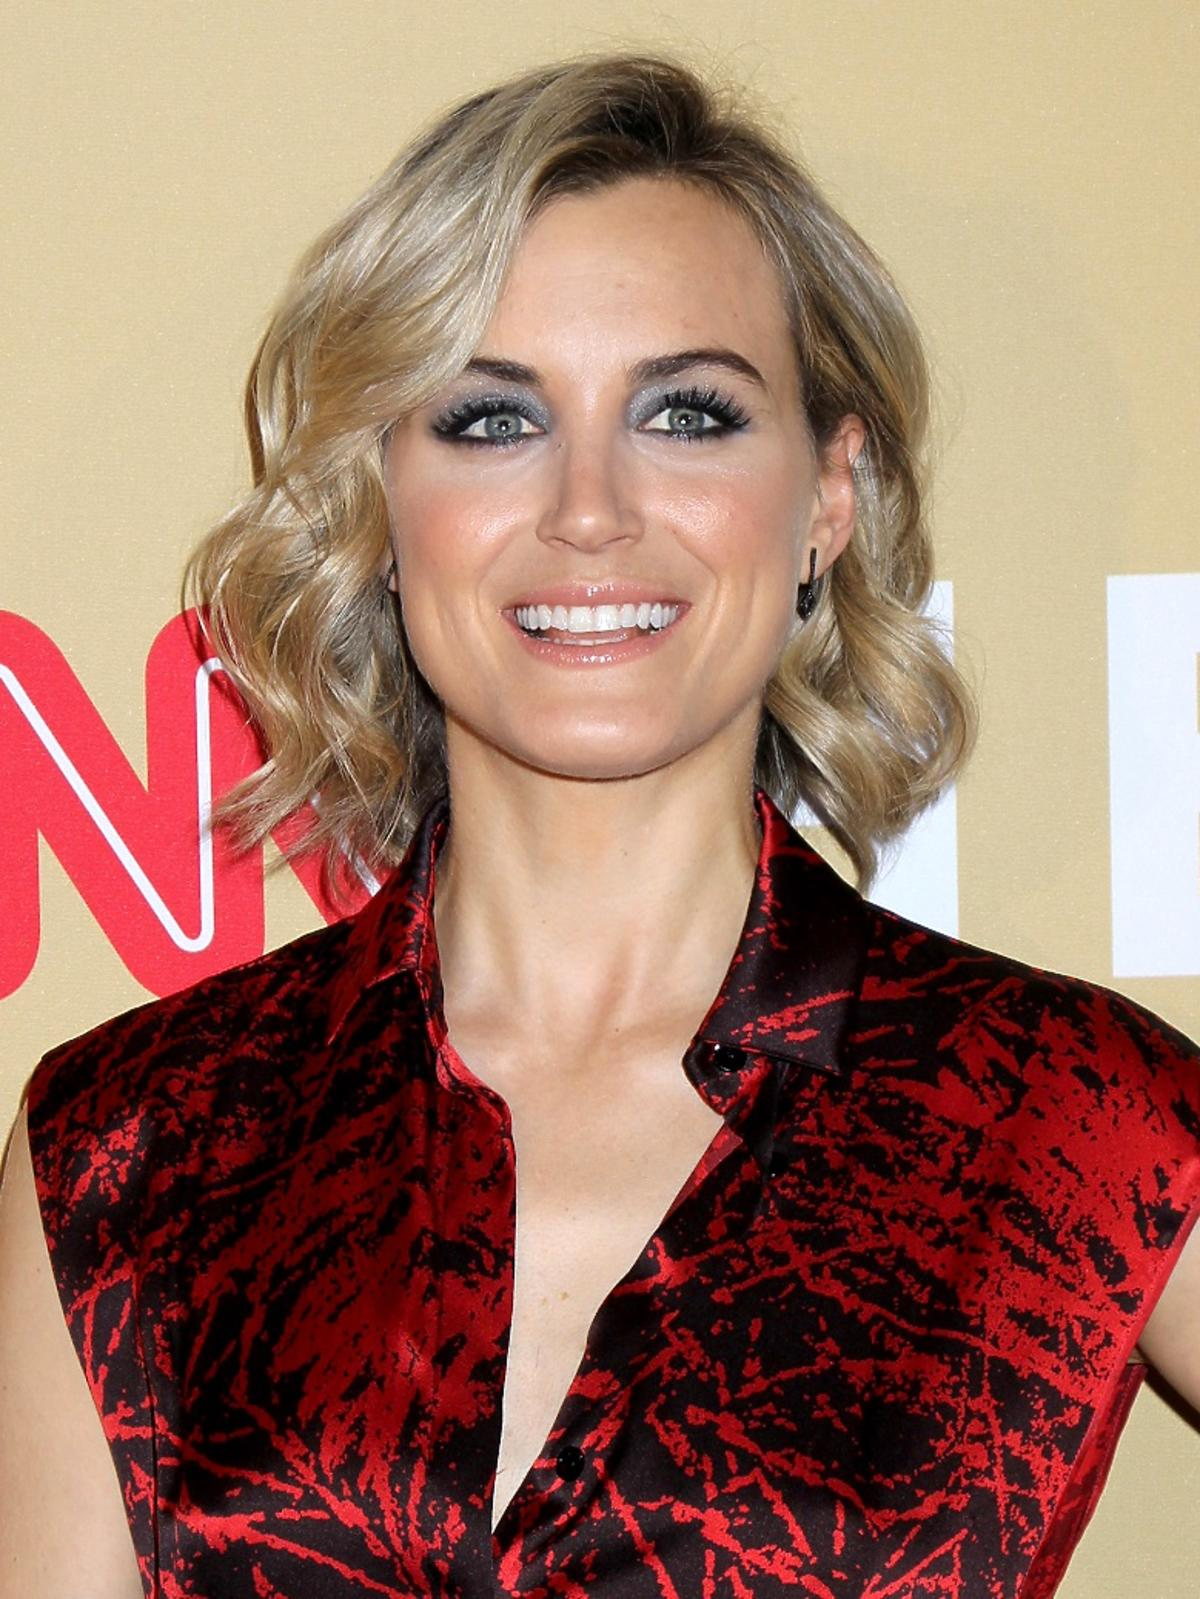 Taylor Schilling. Fot. ONS